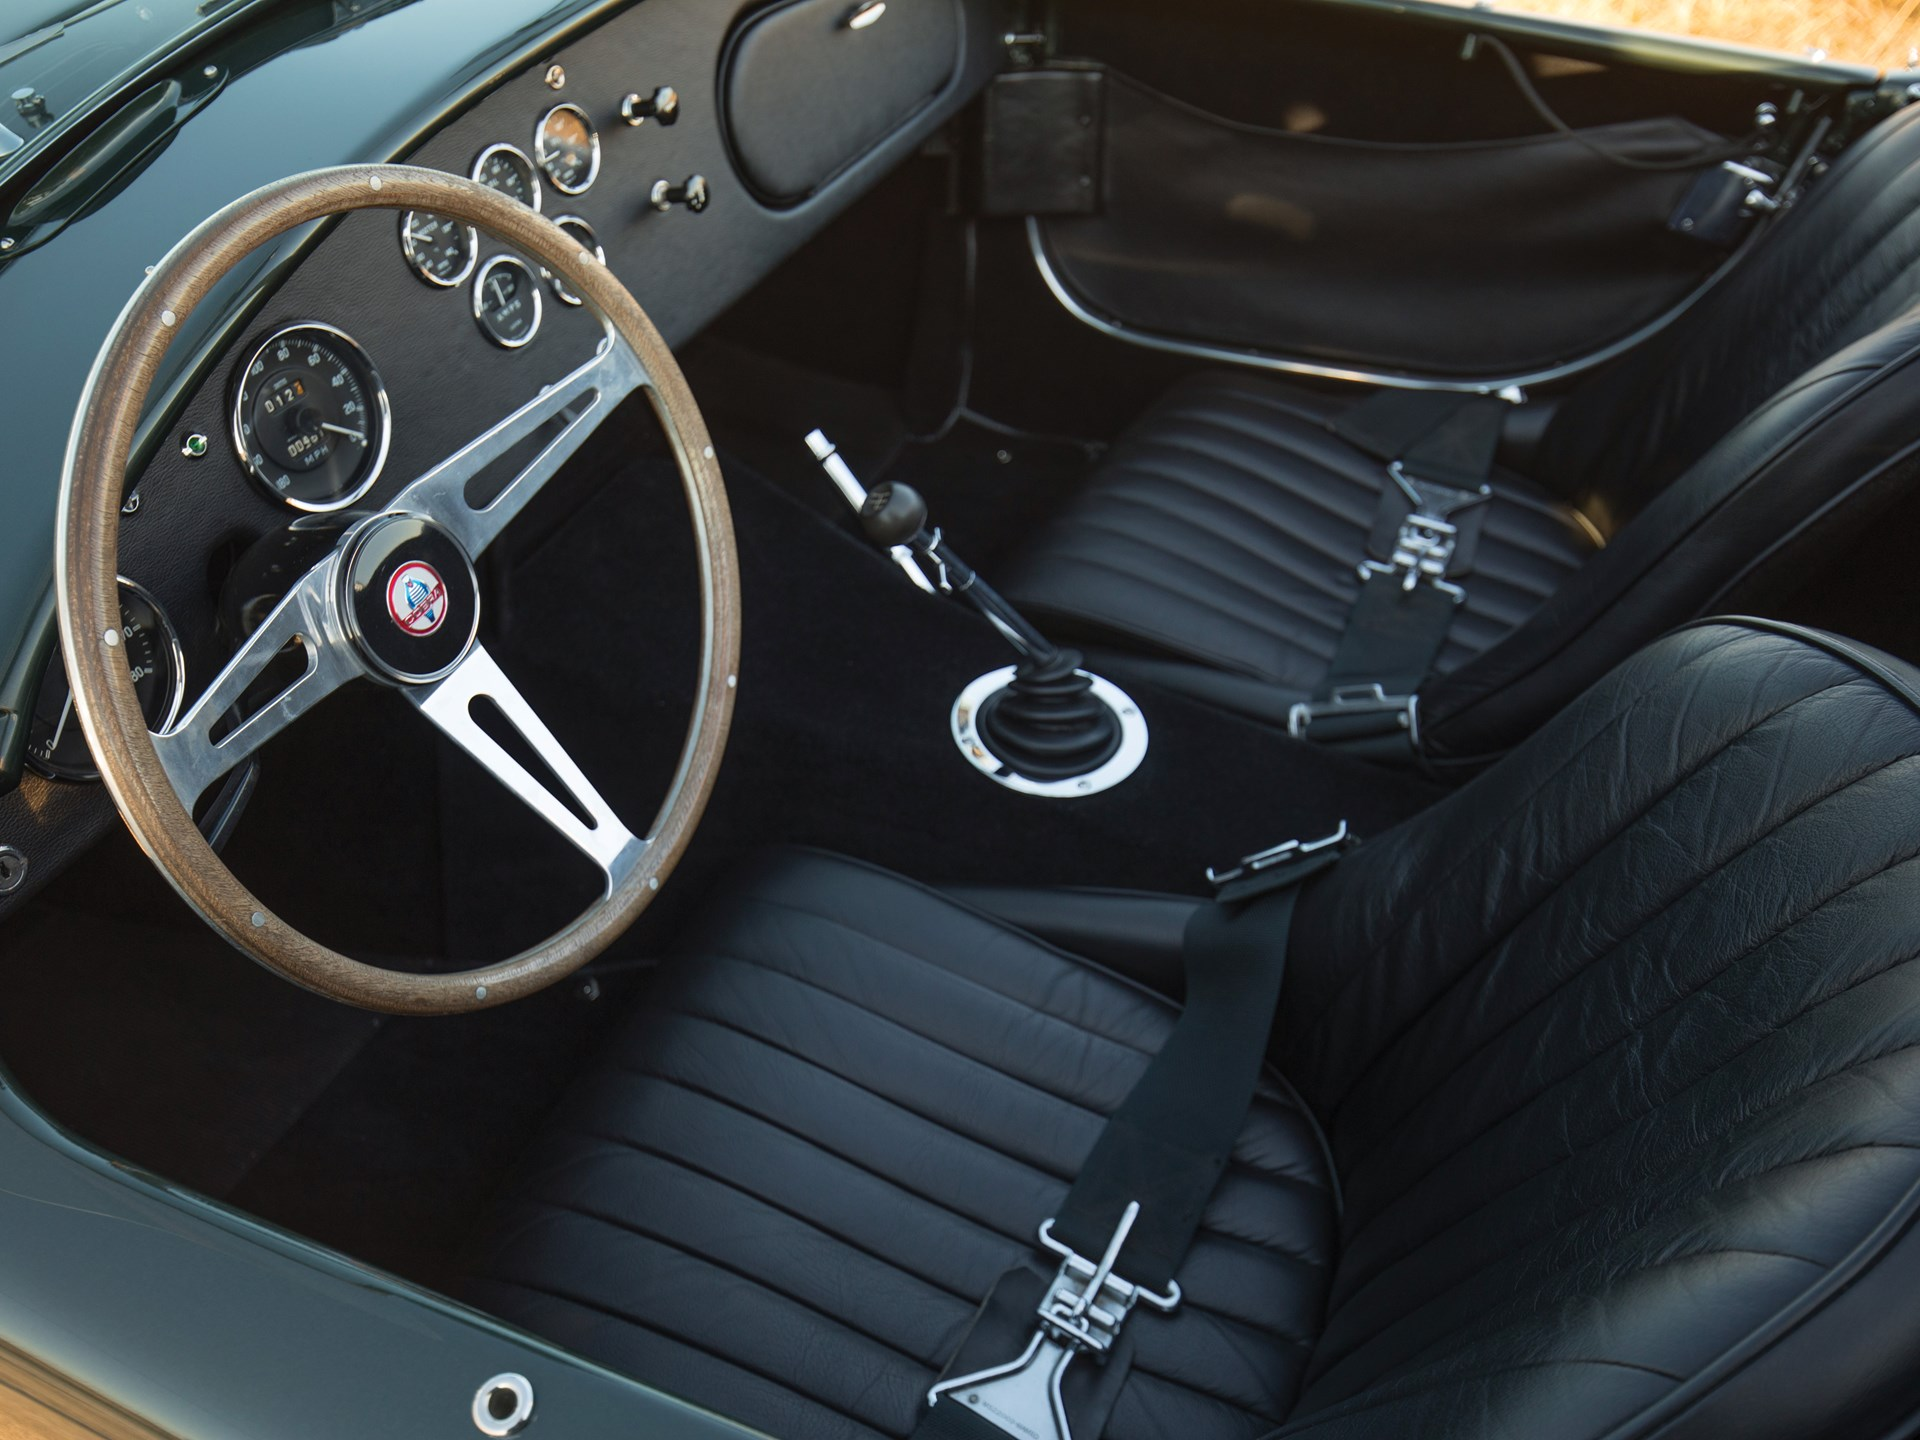 1967 Shelby 427 Cobra interior